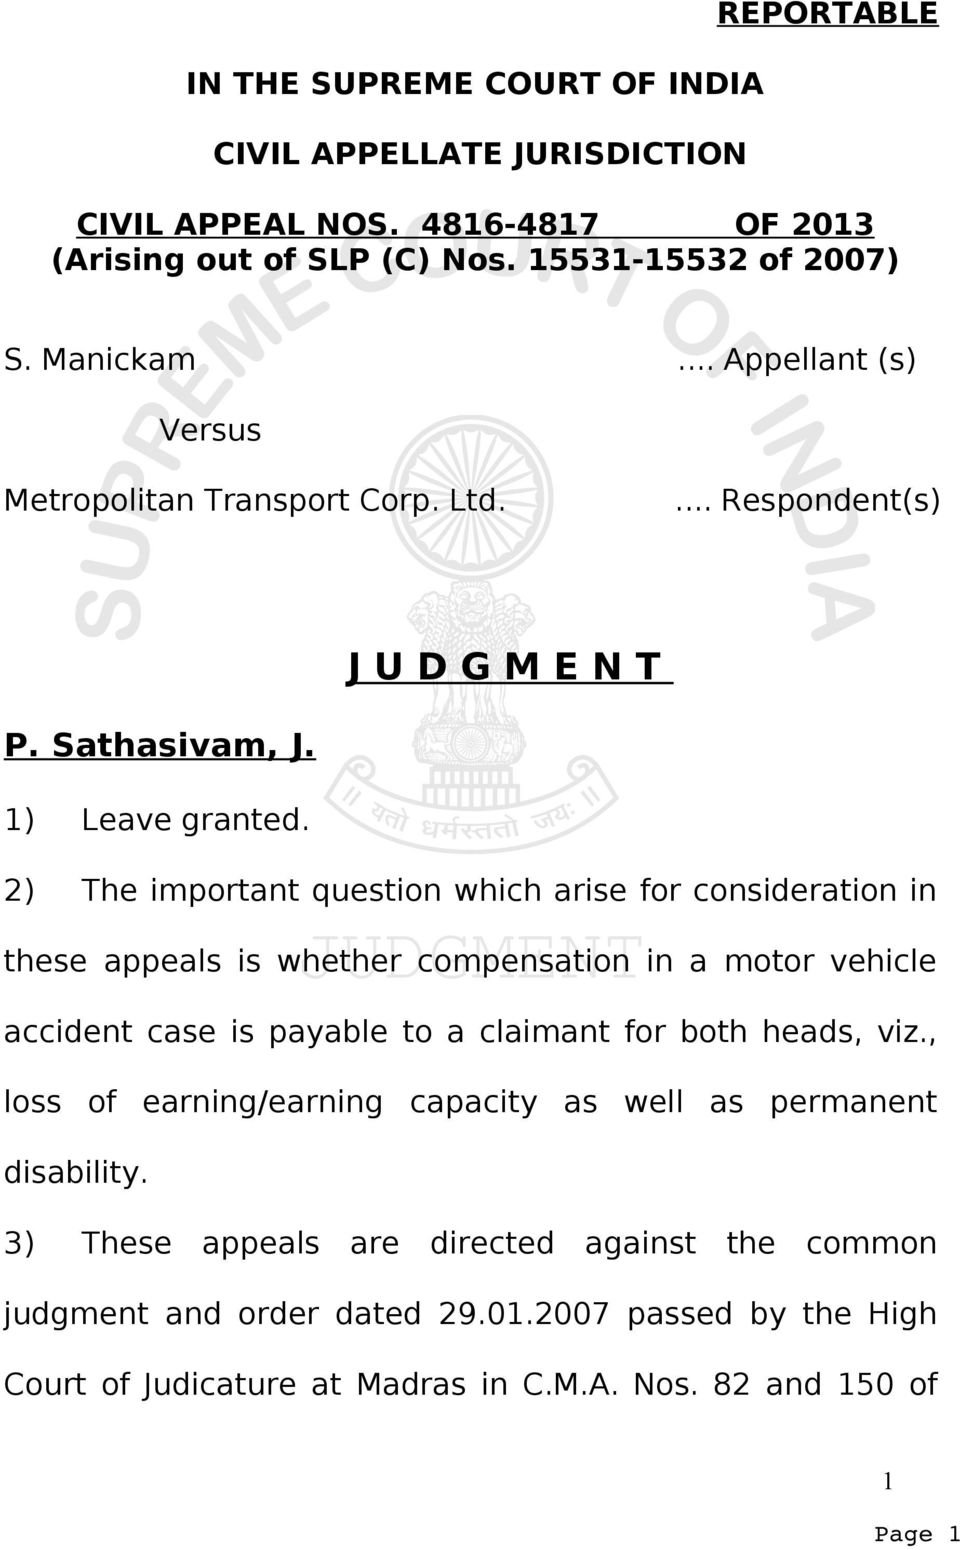 2) The important question which arise for consideration in these appeals is whether compensation in a motor vehicle accident case is payable to a claimant for both heads, viz.